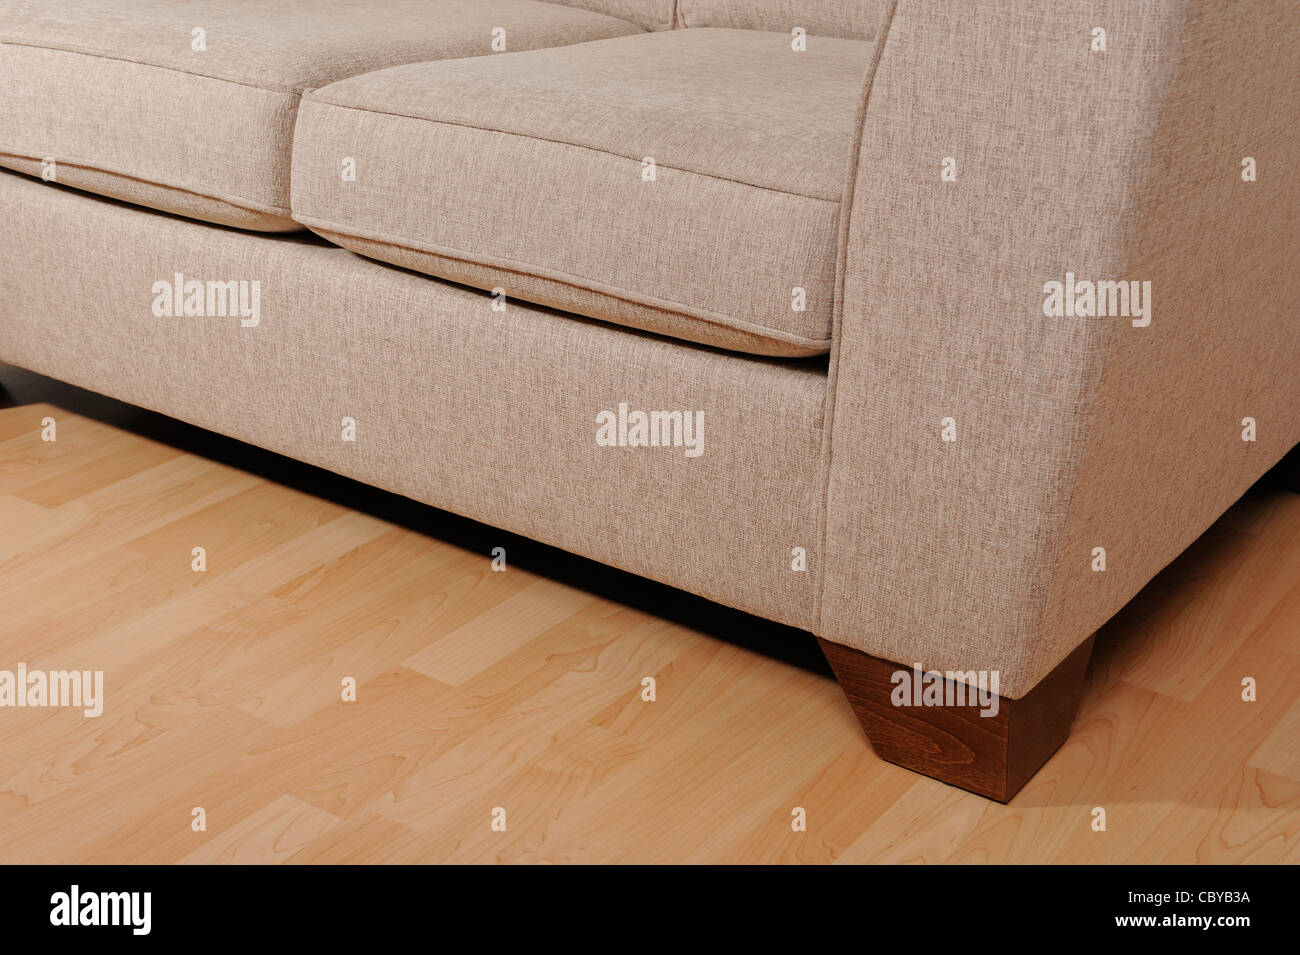 Sofa on a wooden floor - Stock Image